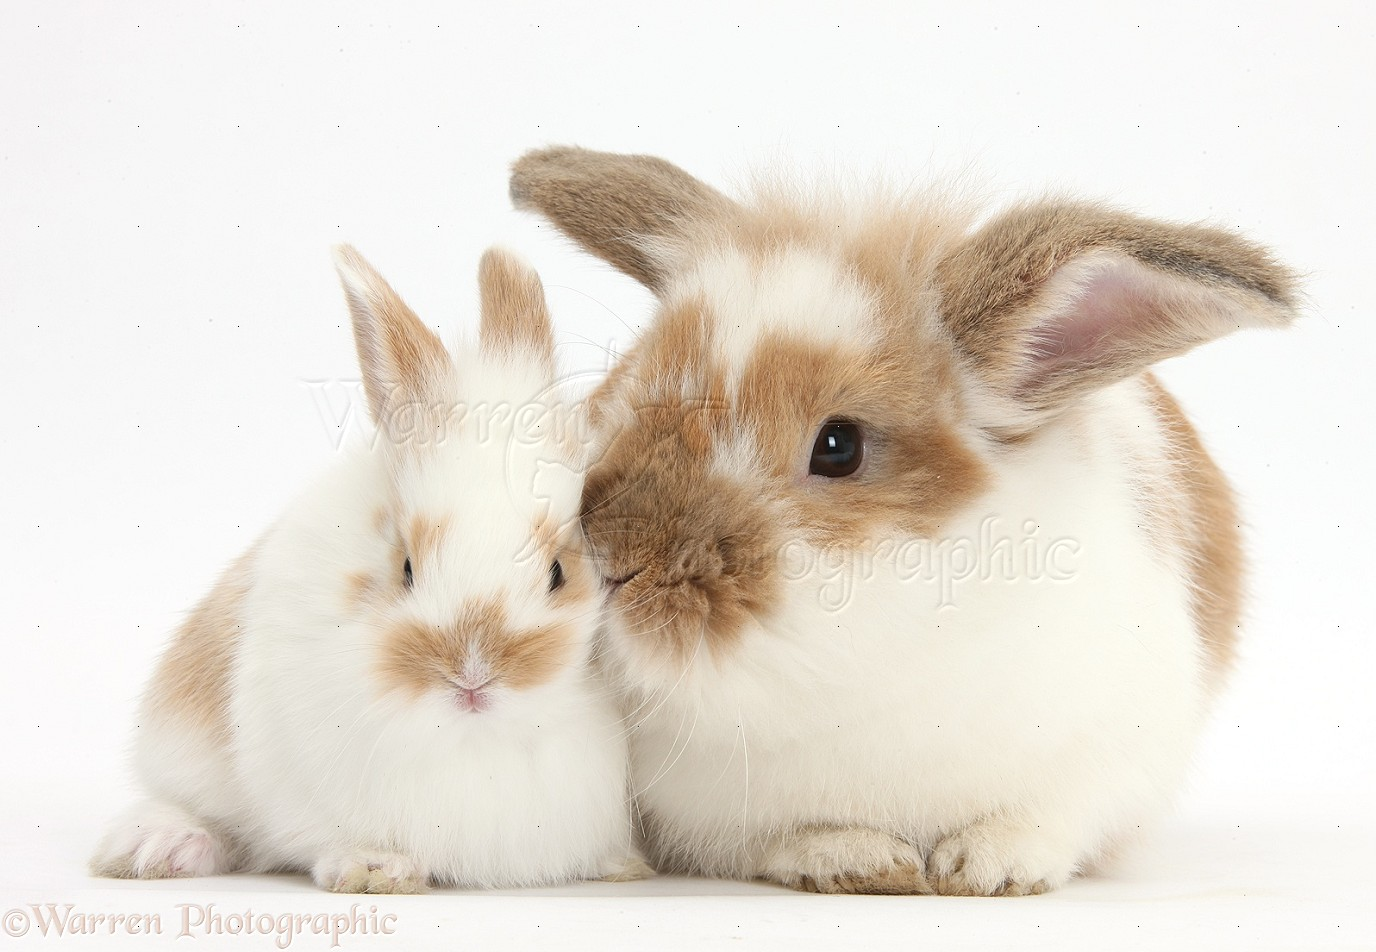 brown and white rabbit and baby bunny photo wp37144